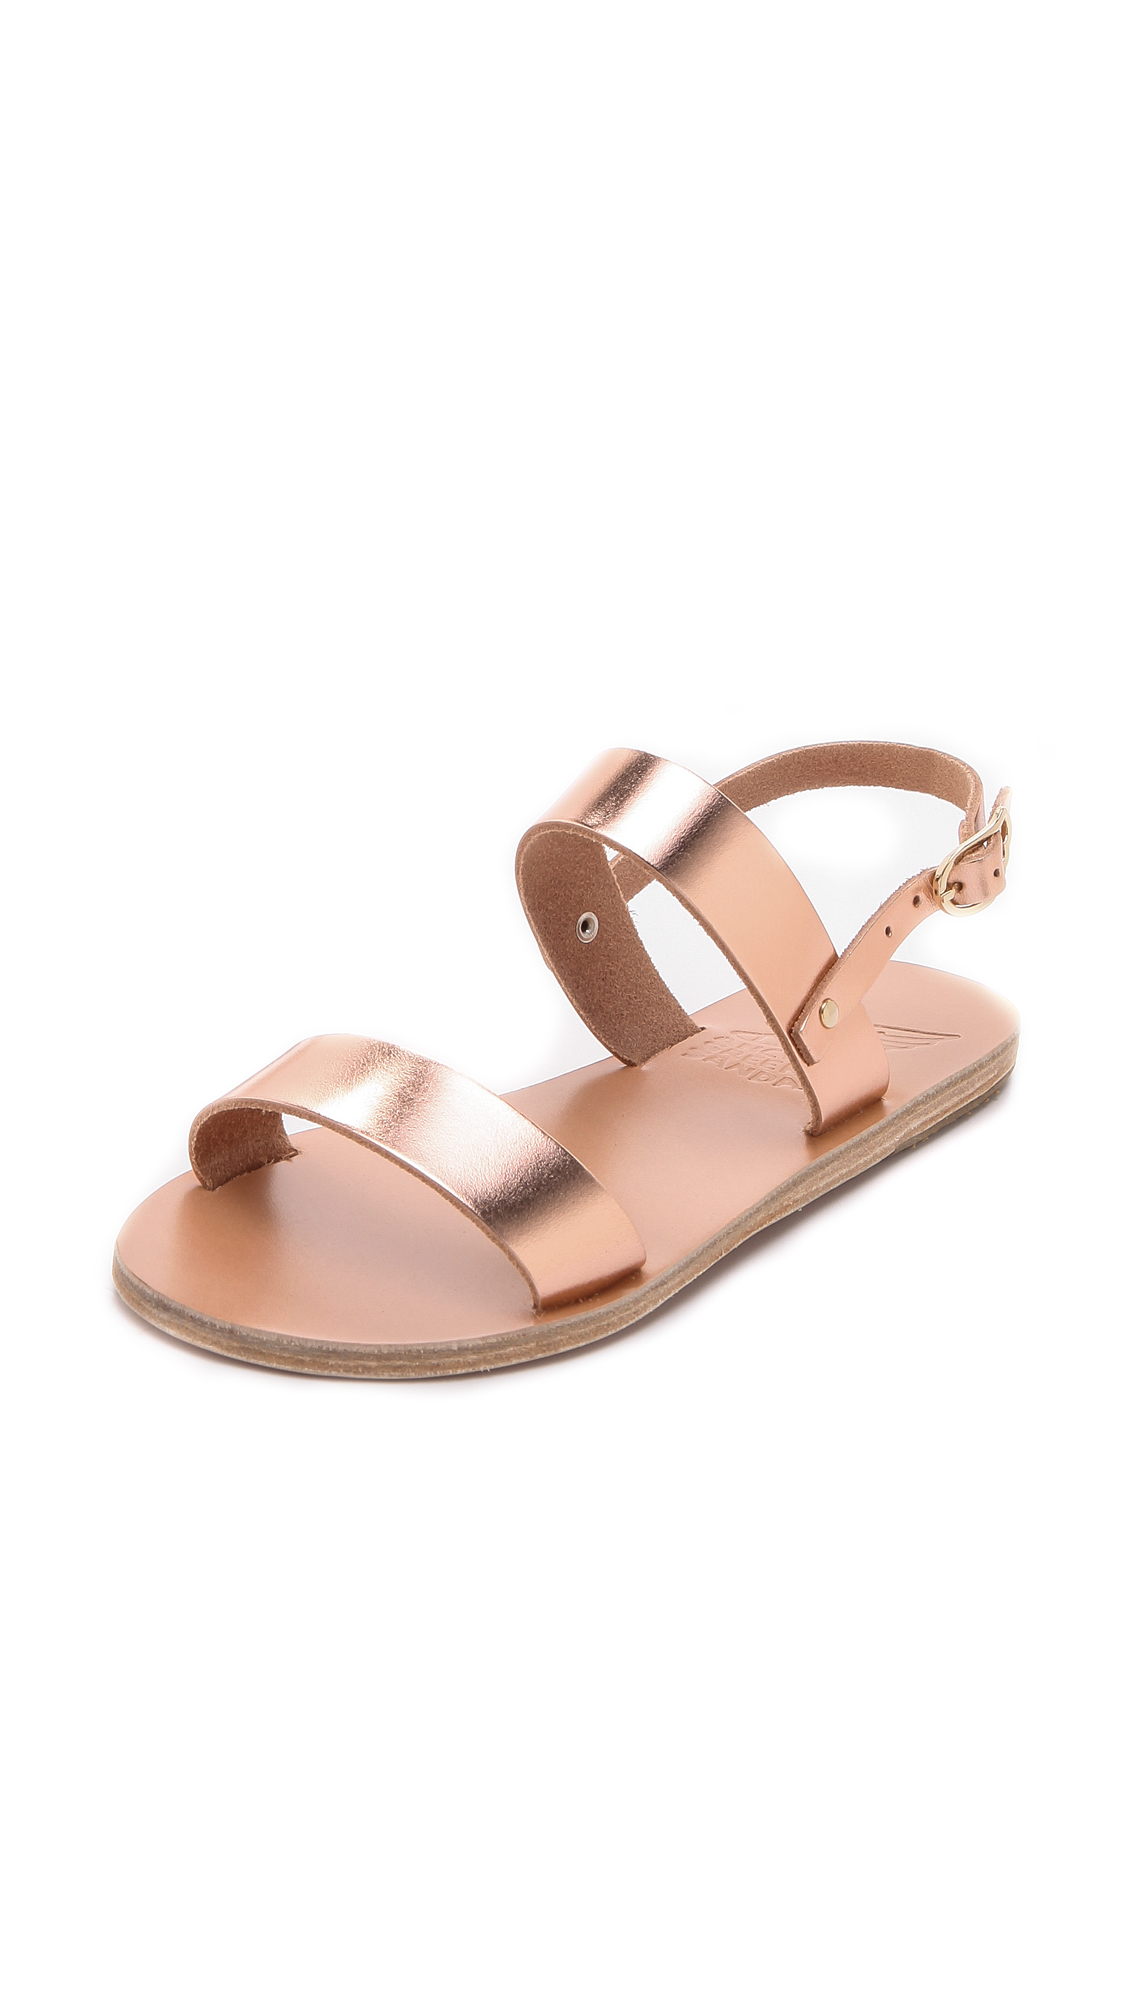 d40721b5feae Pictures of Ancient Greek Sandals Clio - kidskunst.info